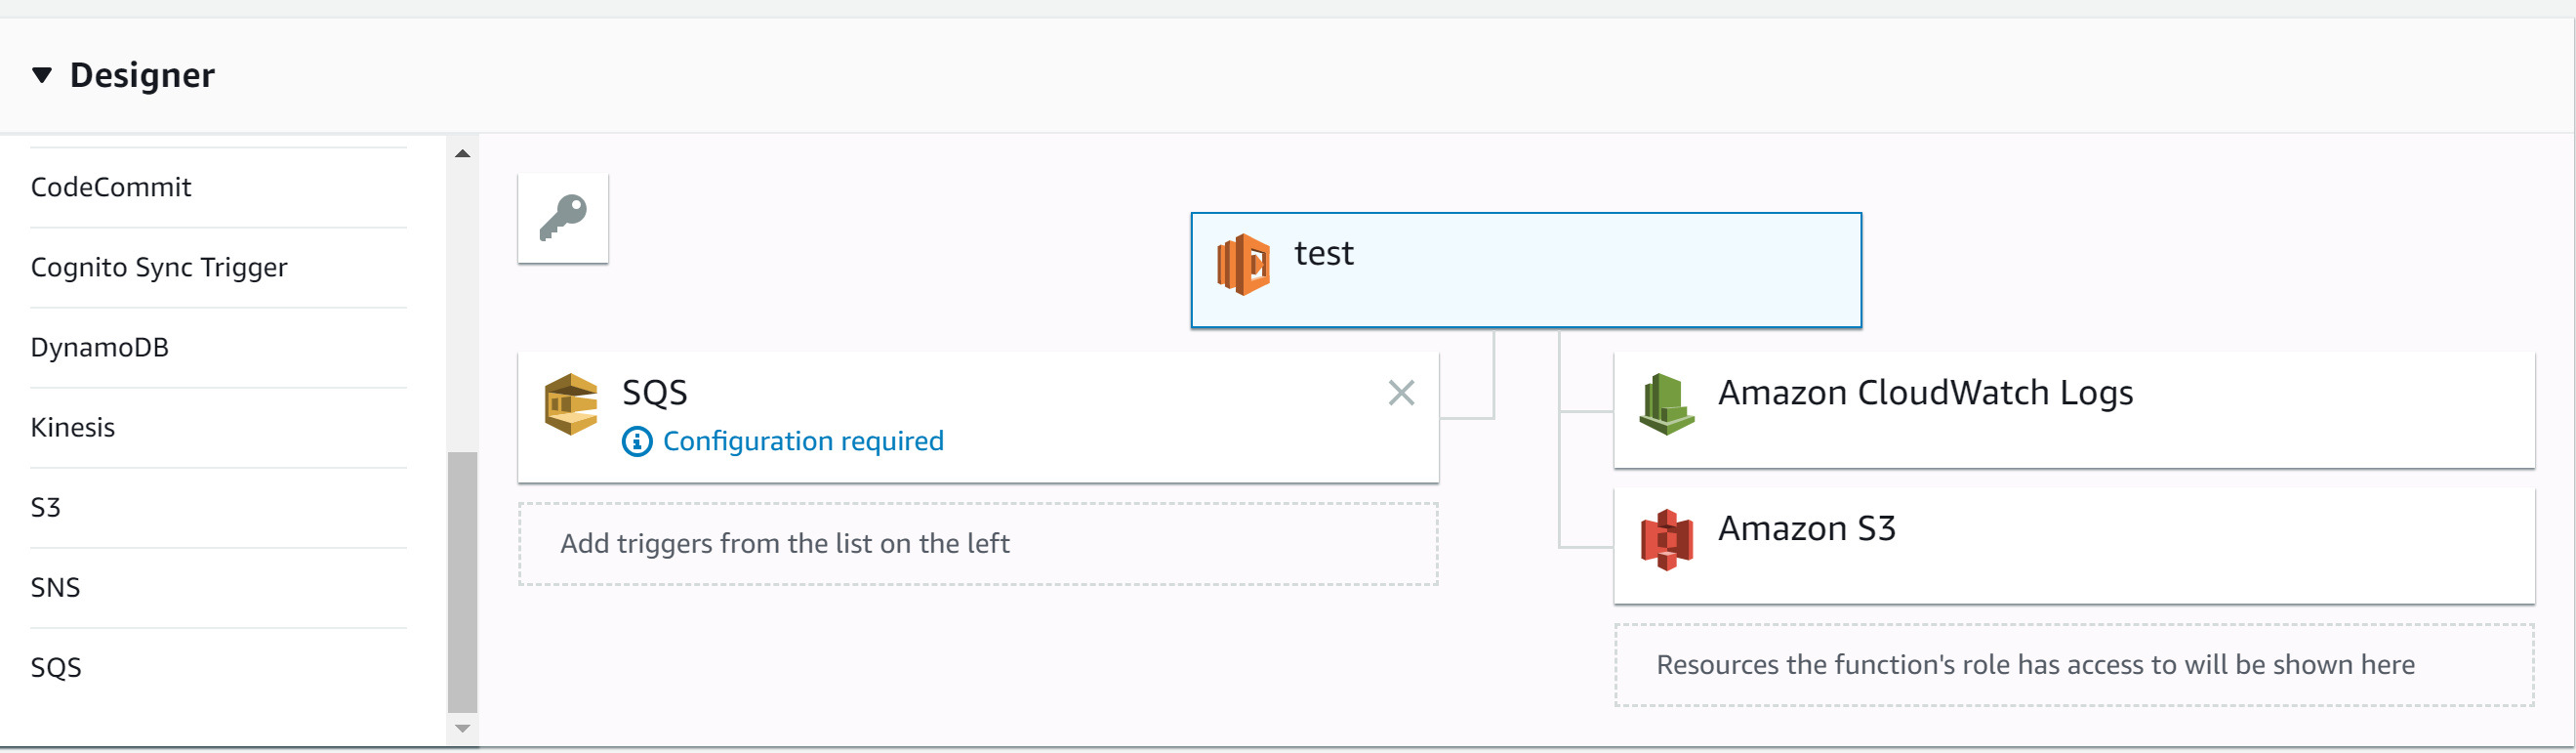 AWS Lambda can now be invoked directly from SQS